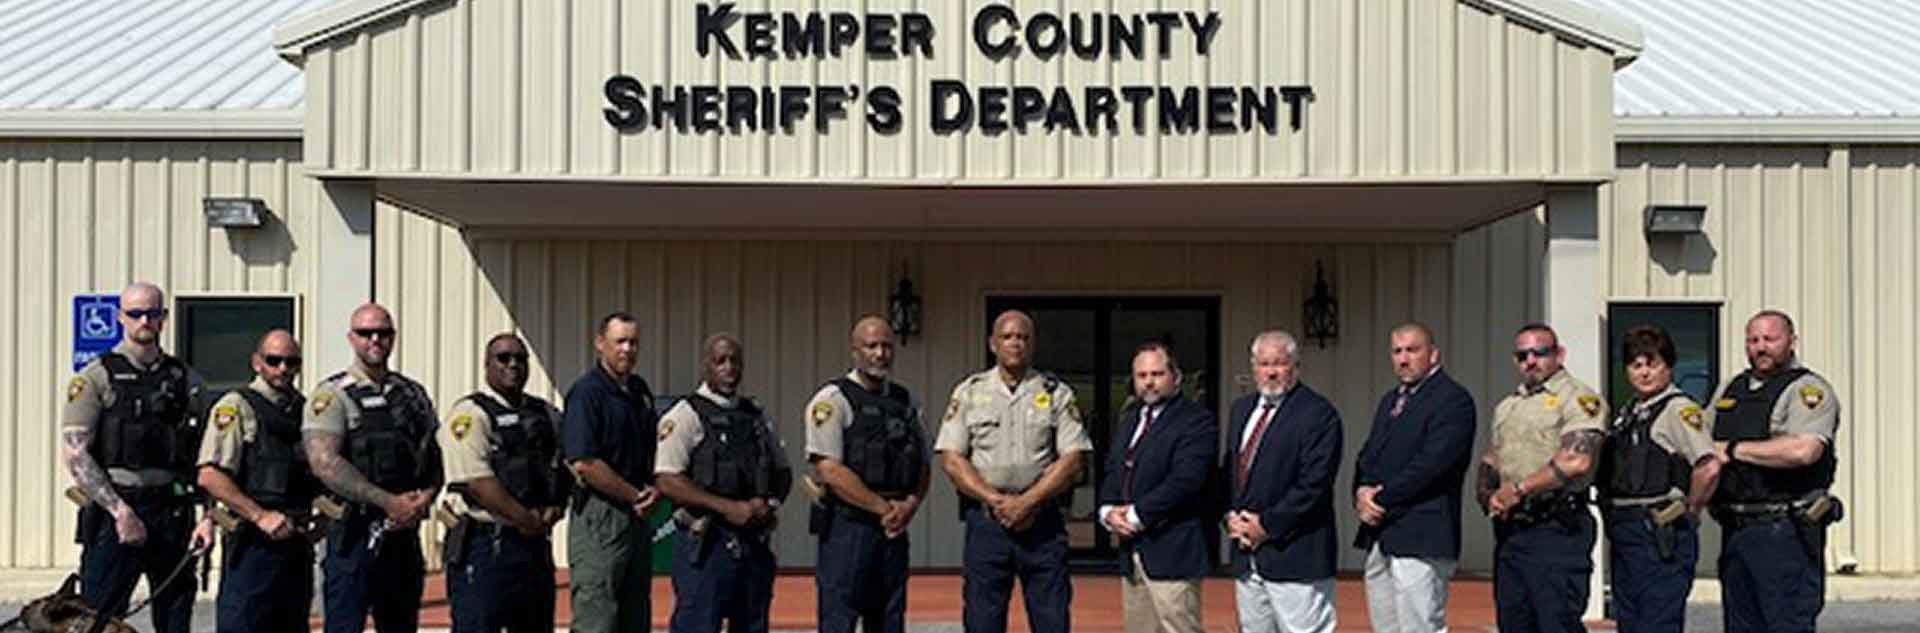 Kemper County Sheriff, Deputies and Staff